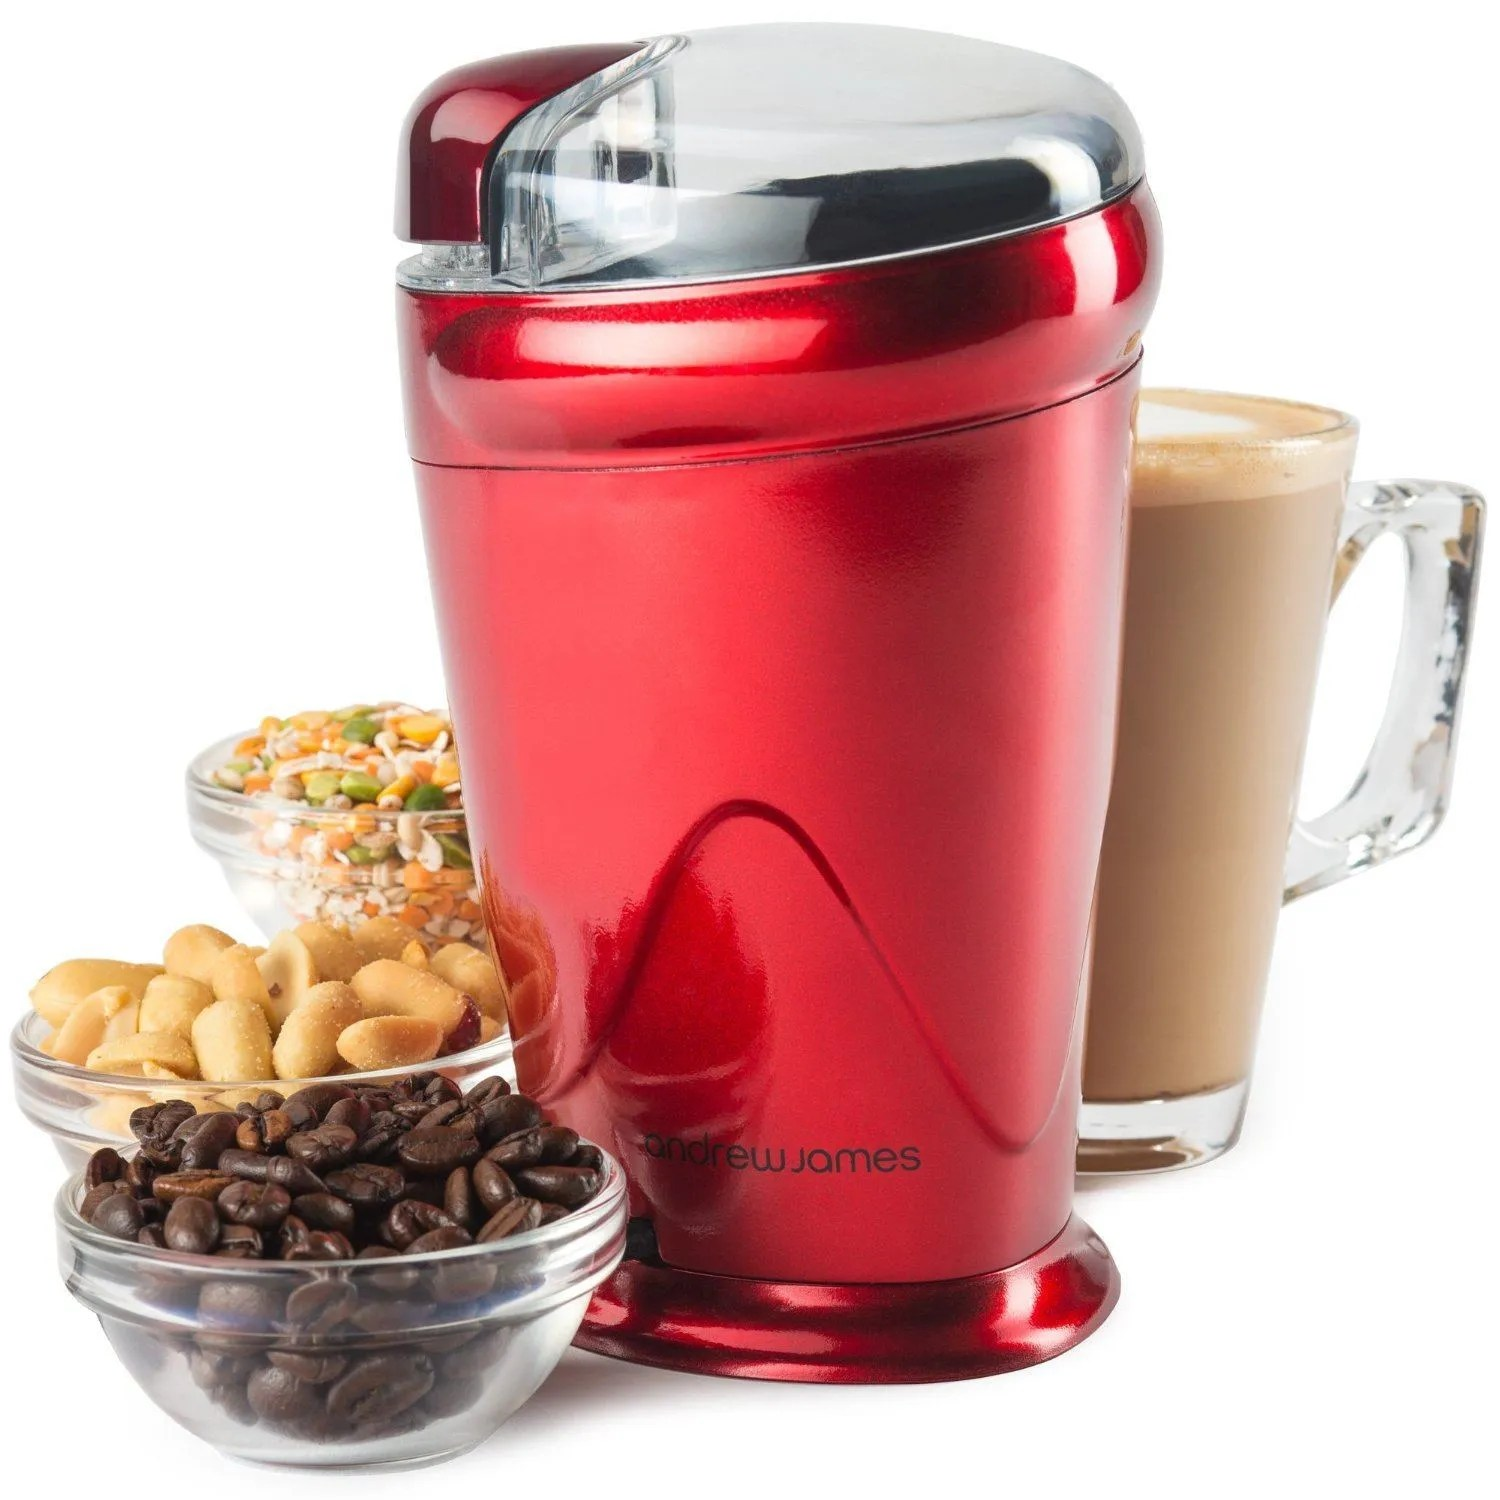 Andrew James Coffee, Nut and Spice Grinder In Red